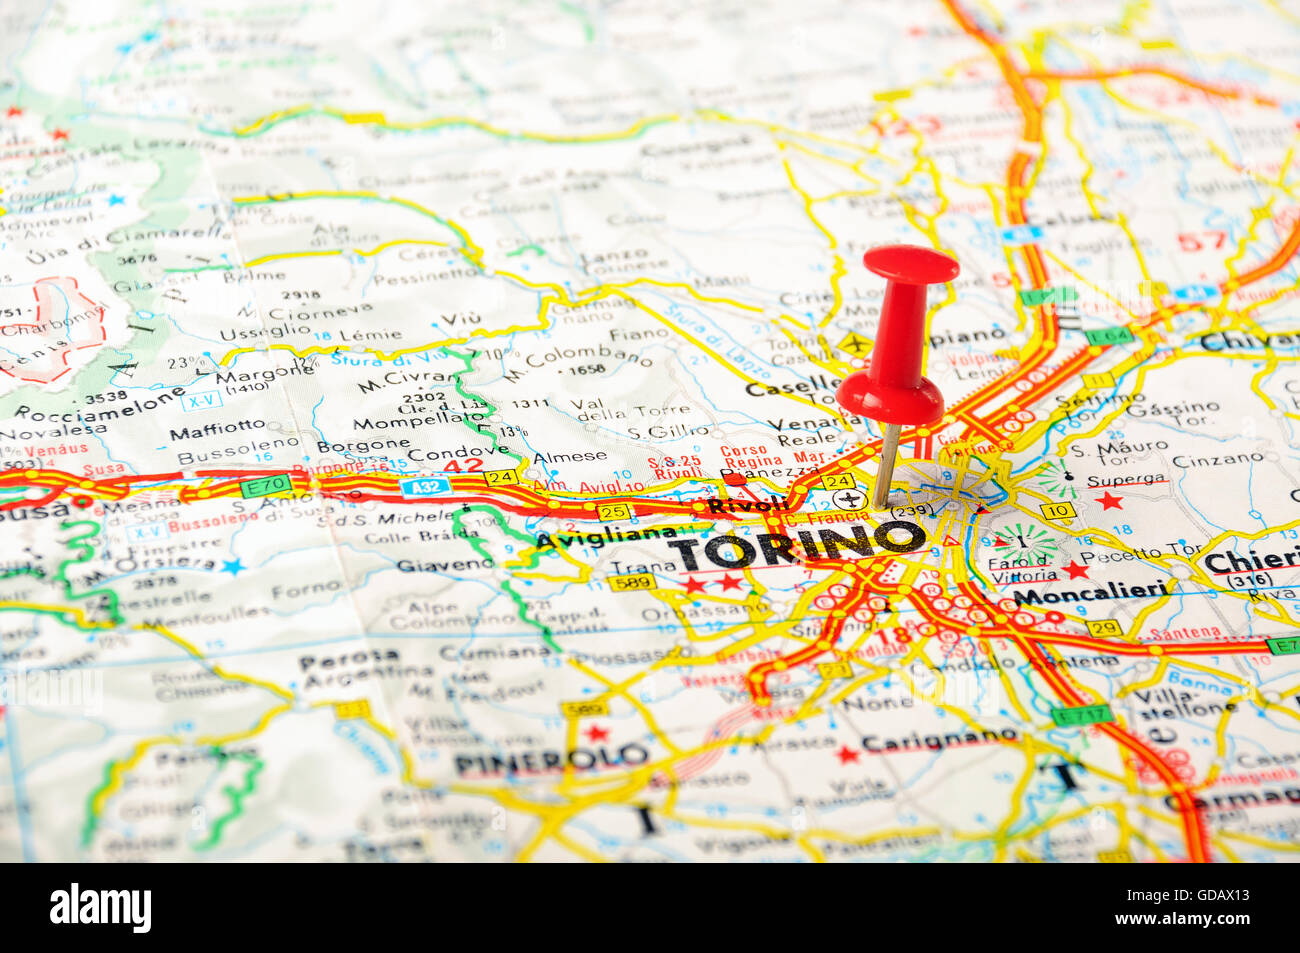 Map Of Italy Torino.Red Push Pin Pointing At Torino Italy Map Stock Photo 111492671